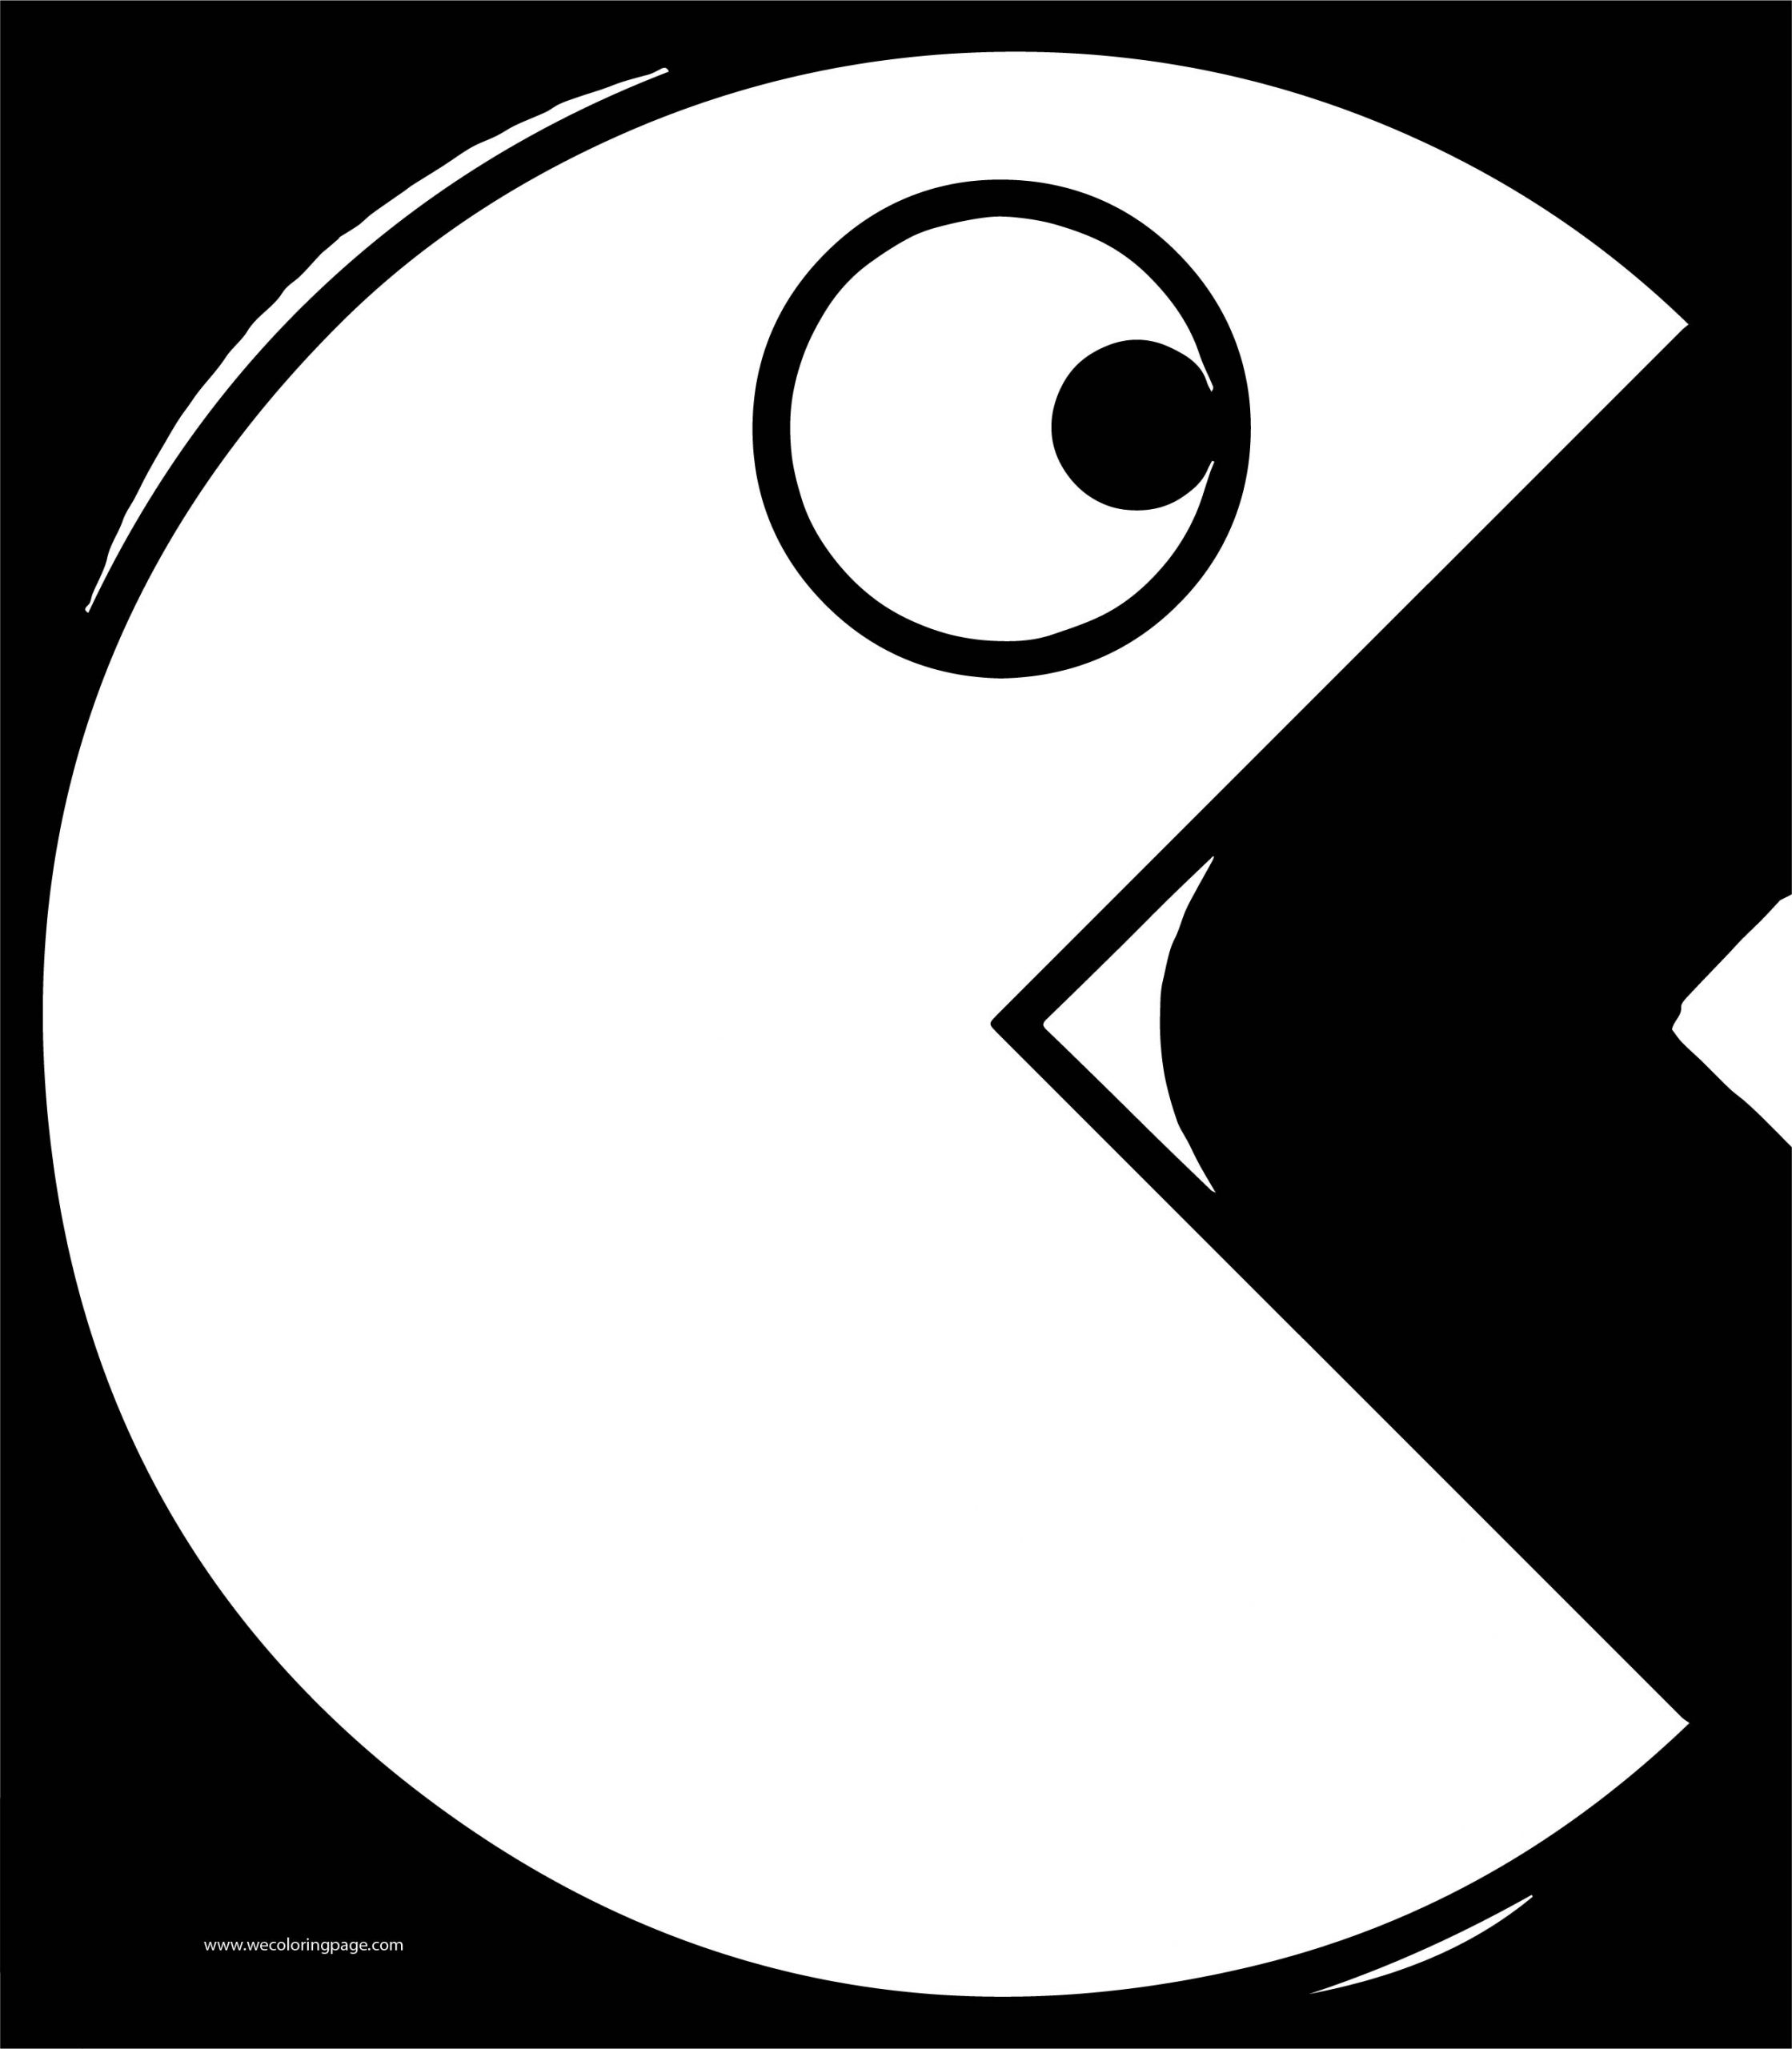 Pacman Black Background Open Mouth Coloring Page